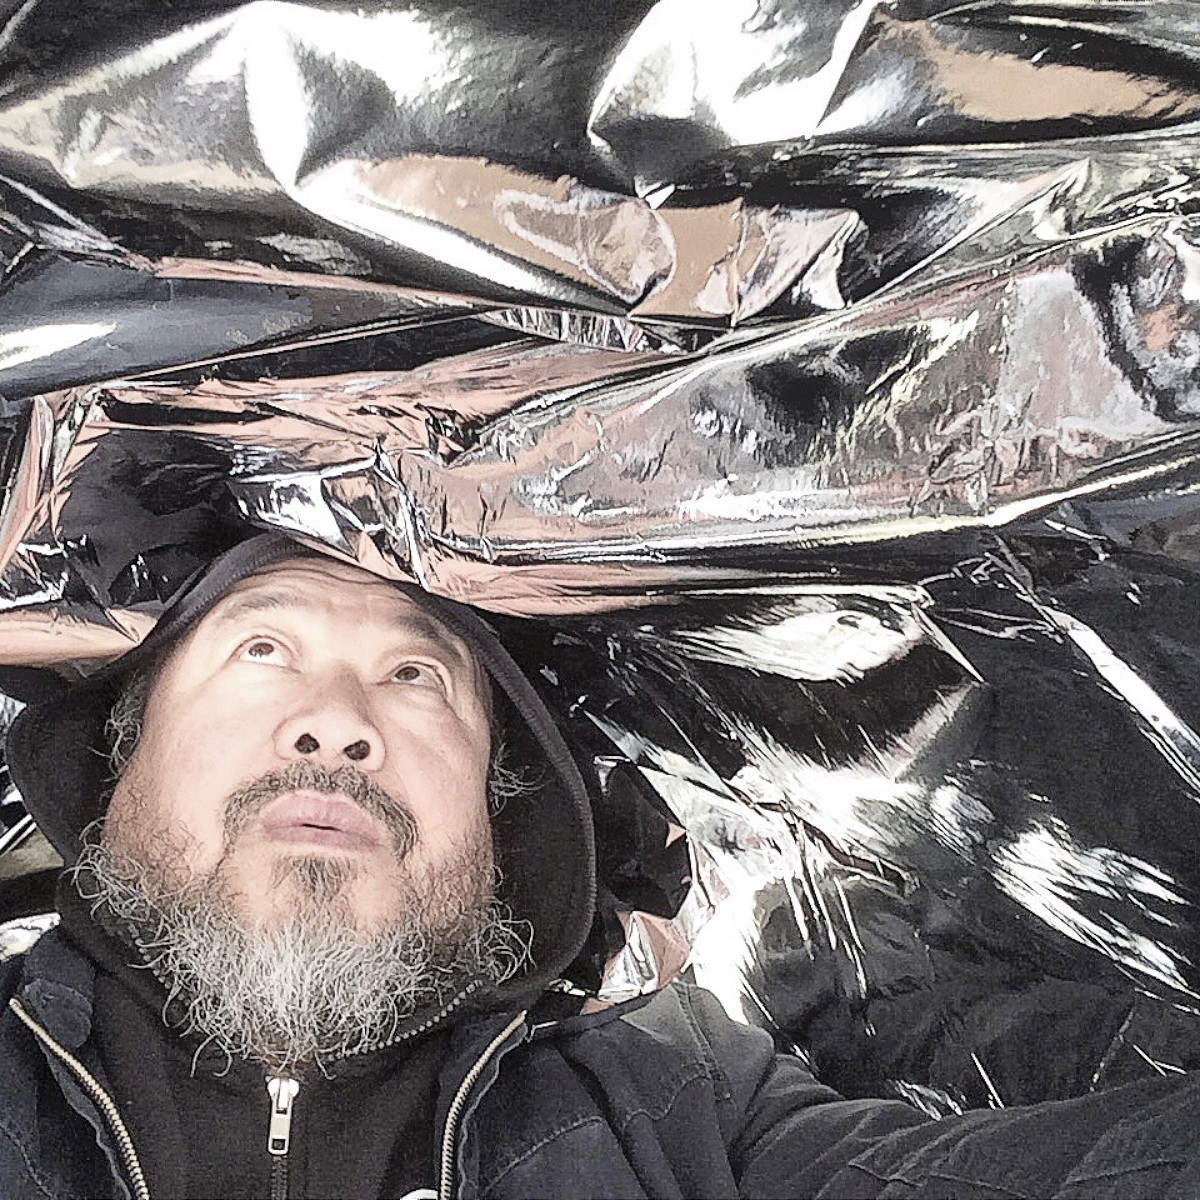 Ai WeiweiChinese 1957–Ai Weiwei with Andy Warhol's Silver Clouds, @aiww, Instagram, 2015Ai Weiwei Studio© Ai Weiwei; Andy Warhol artwork ©2015 The Andy Warhol Foundation for the Visual Arts, Inc./ARS, New York. Licensed by Viscopy, Sydney. EXHI034173